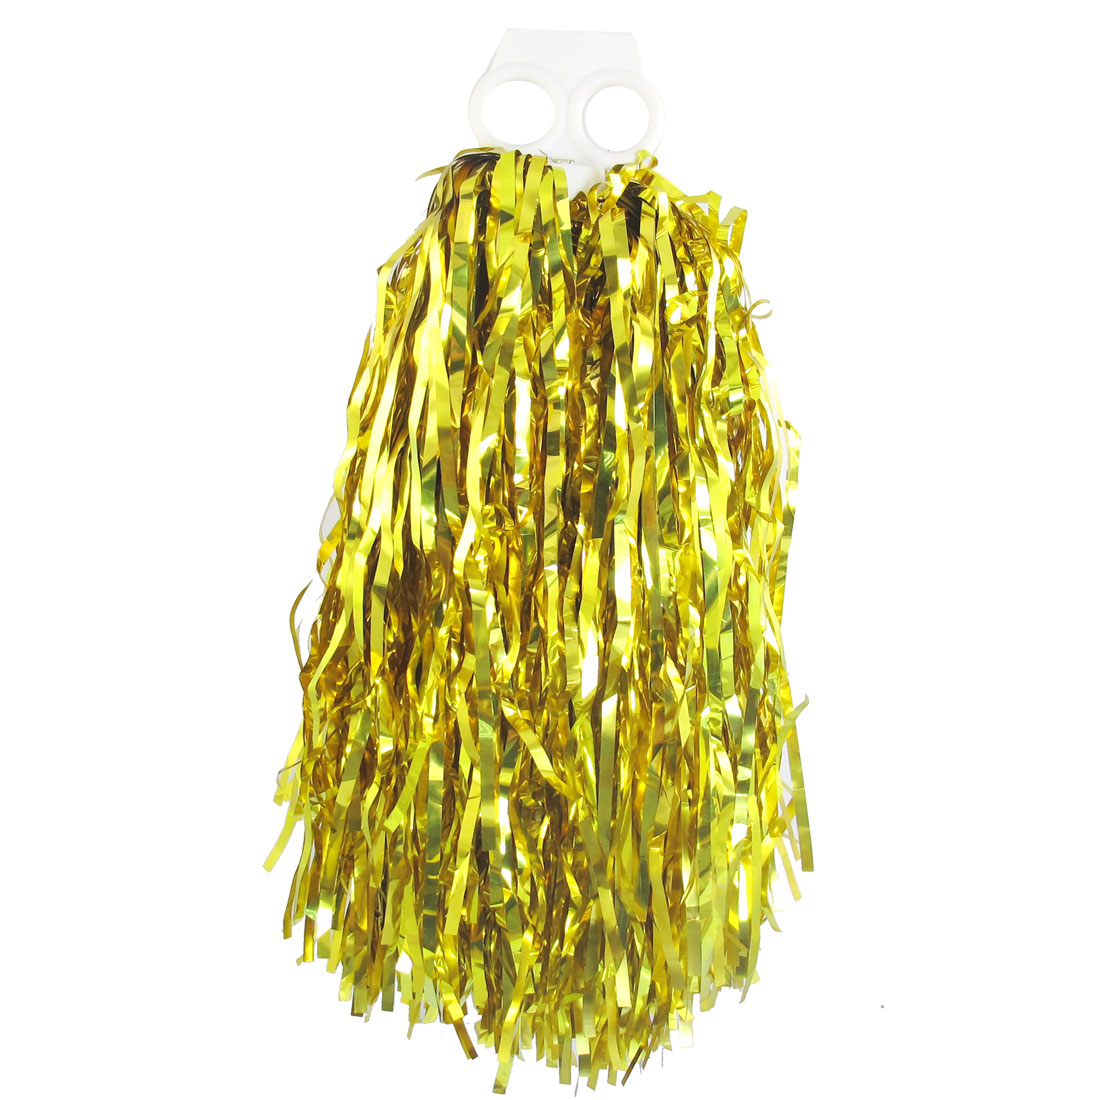 Youth Costume Cheer Leader Handle Pom Poms Shakers Gold Tone Plastic